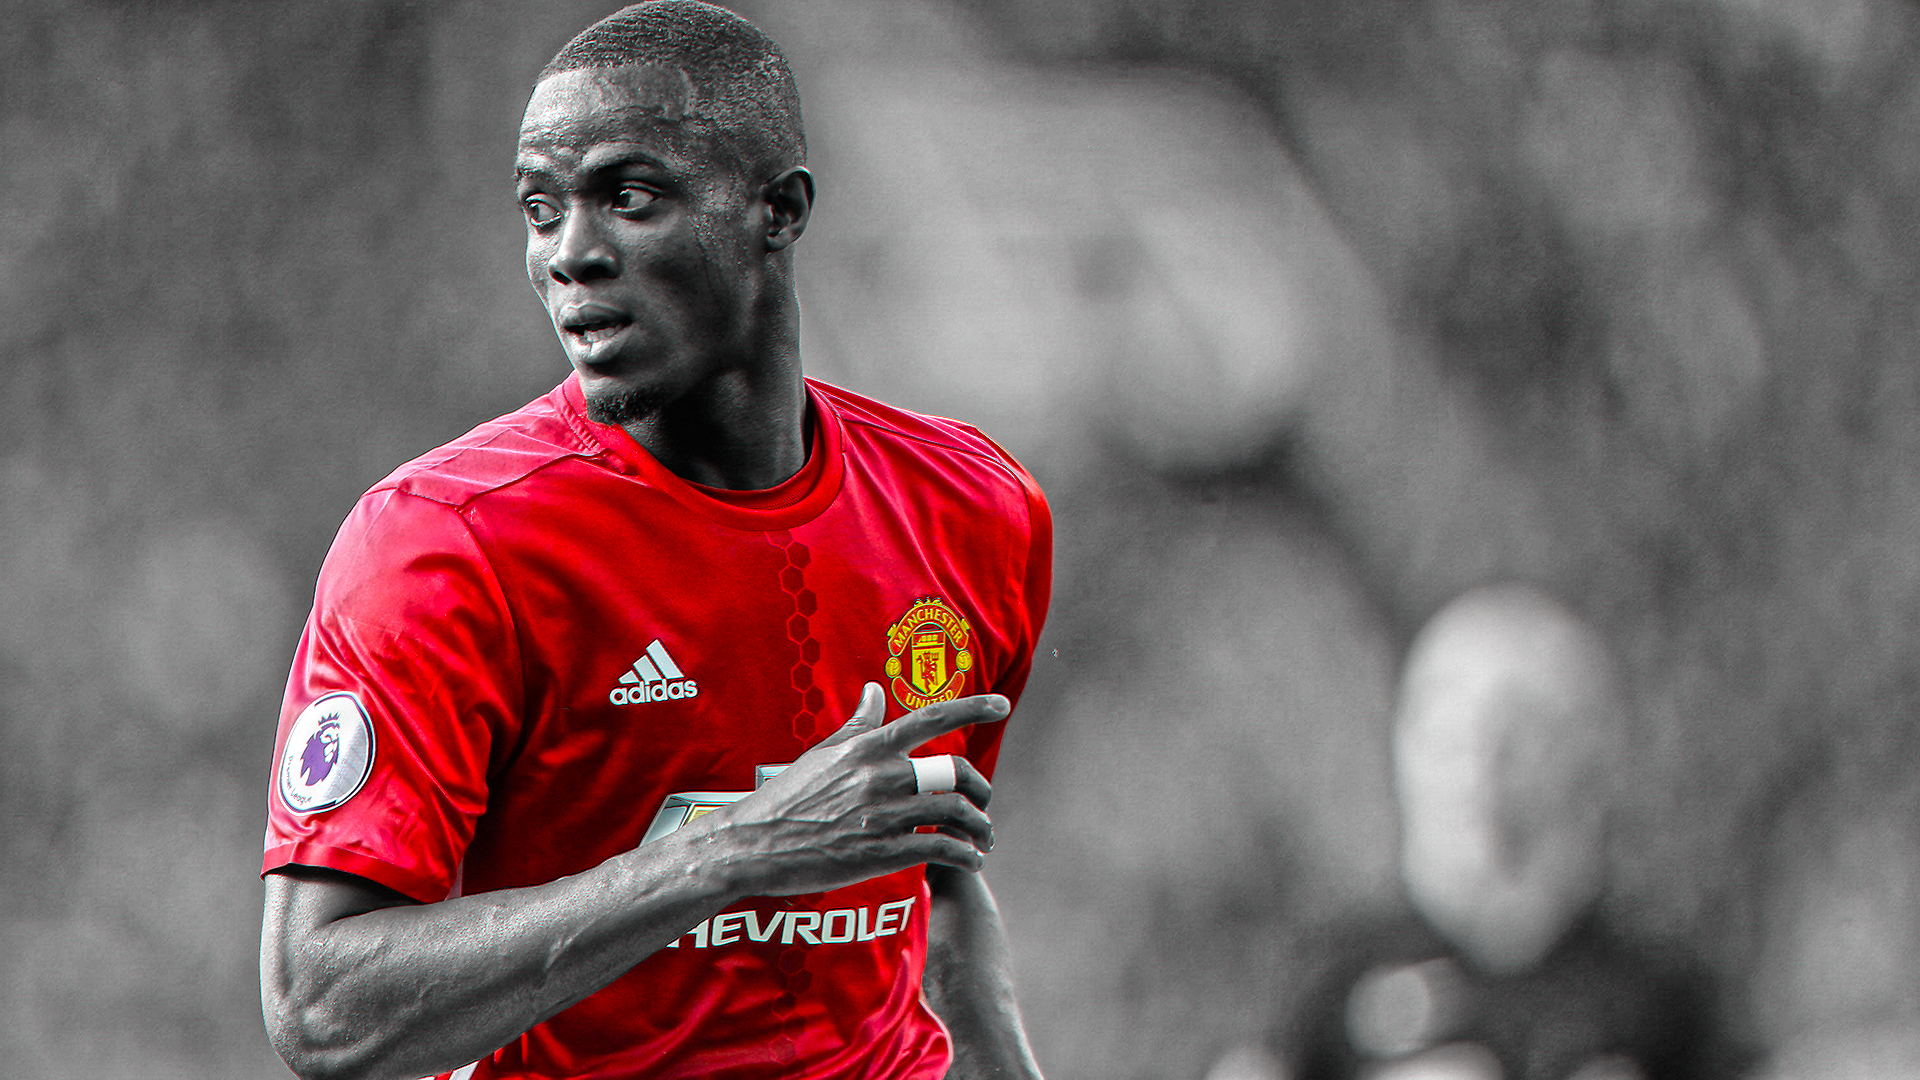 True Collors Eric Bailly by eduardofonseca13 on DeviantArt